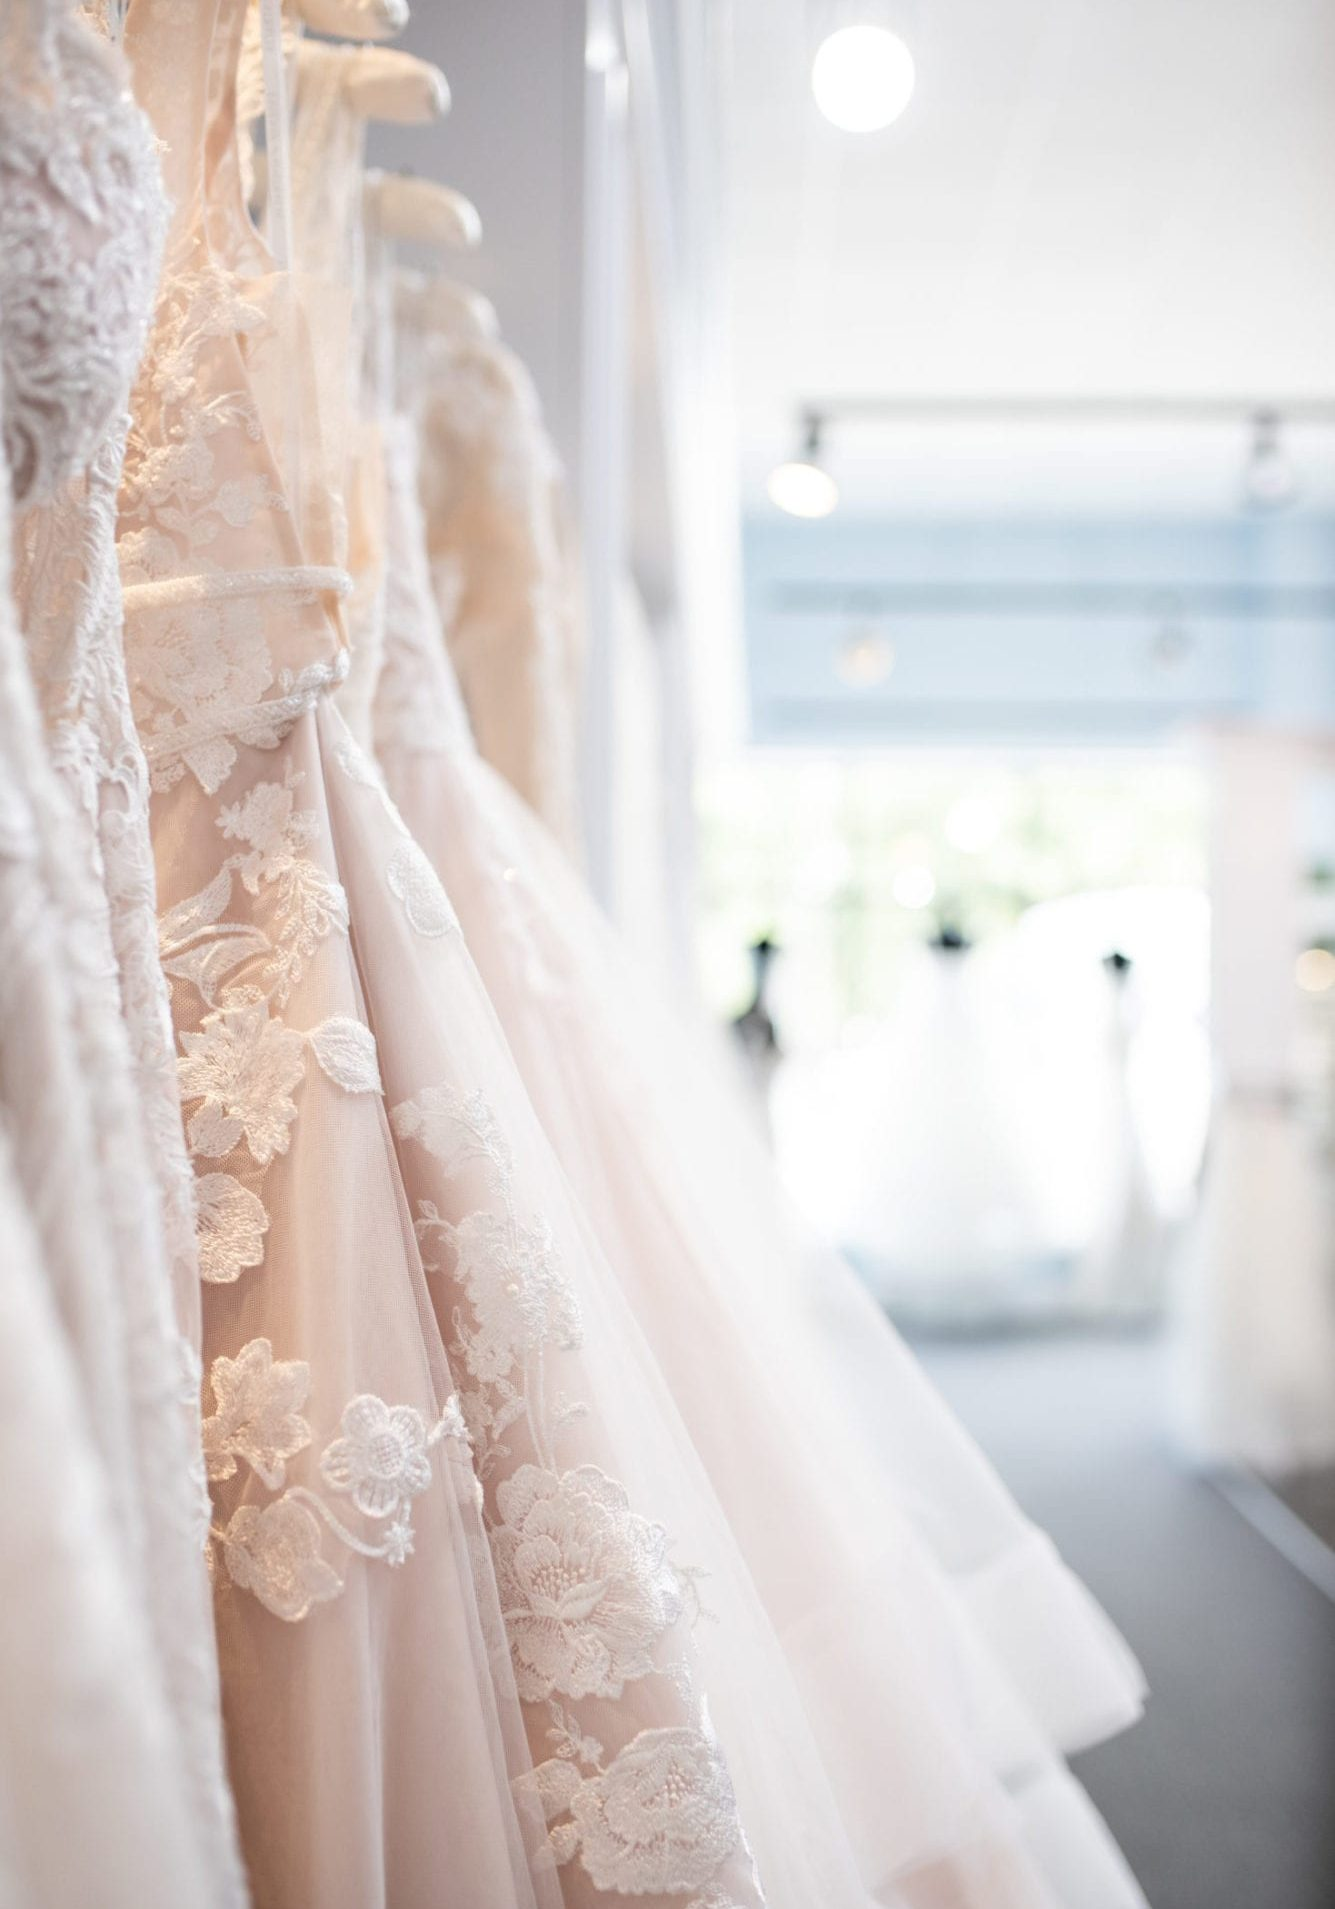 Lace Wedding Dresses at Gown Boutique